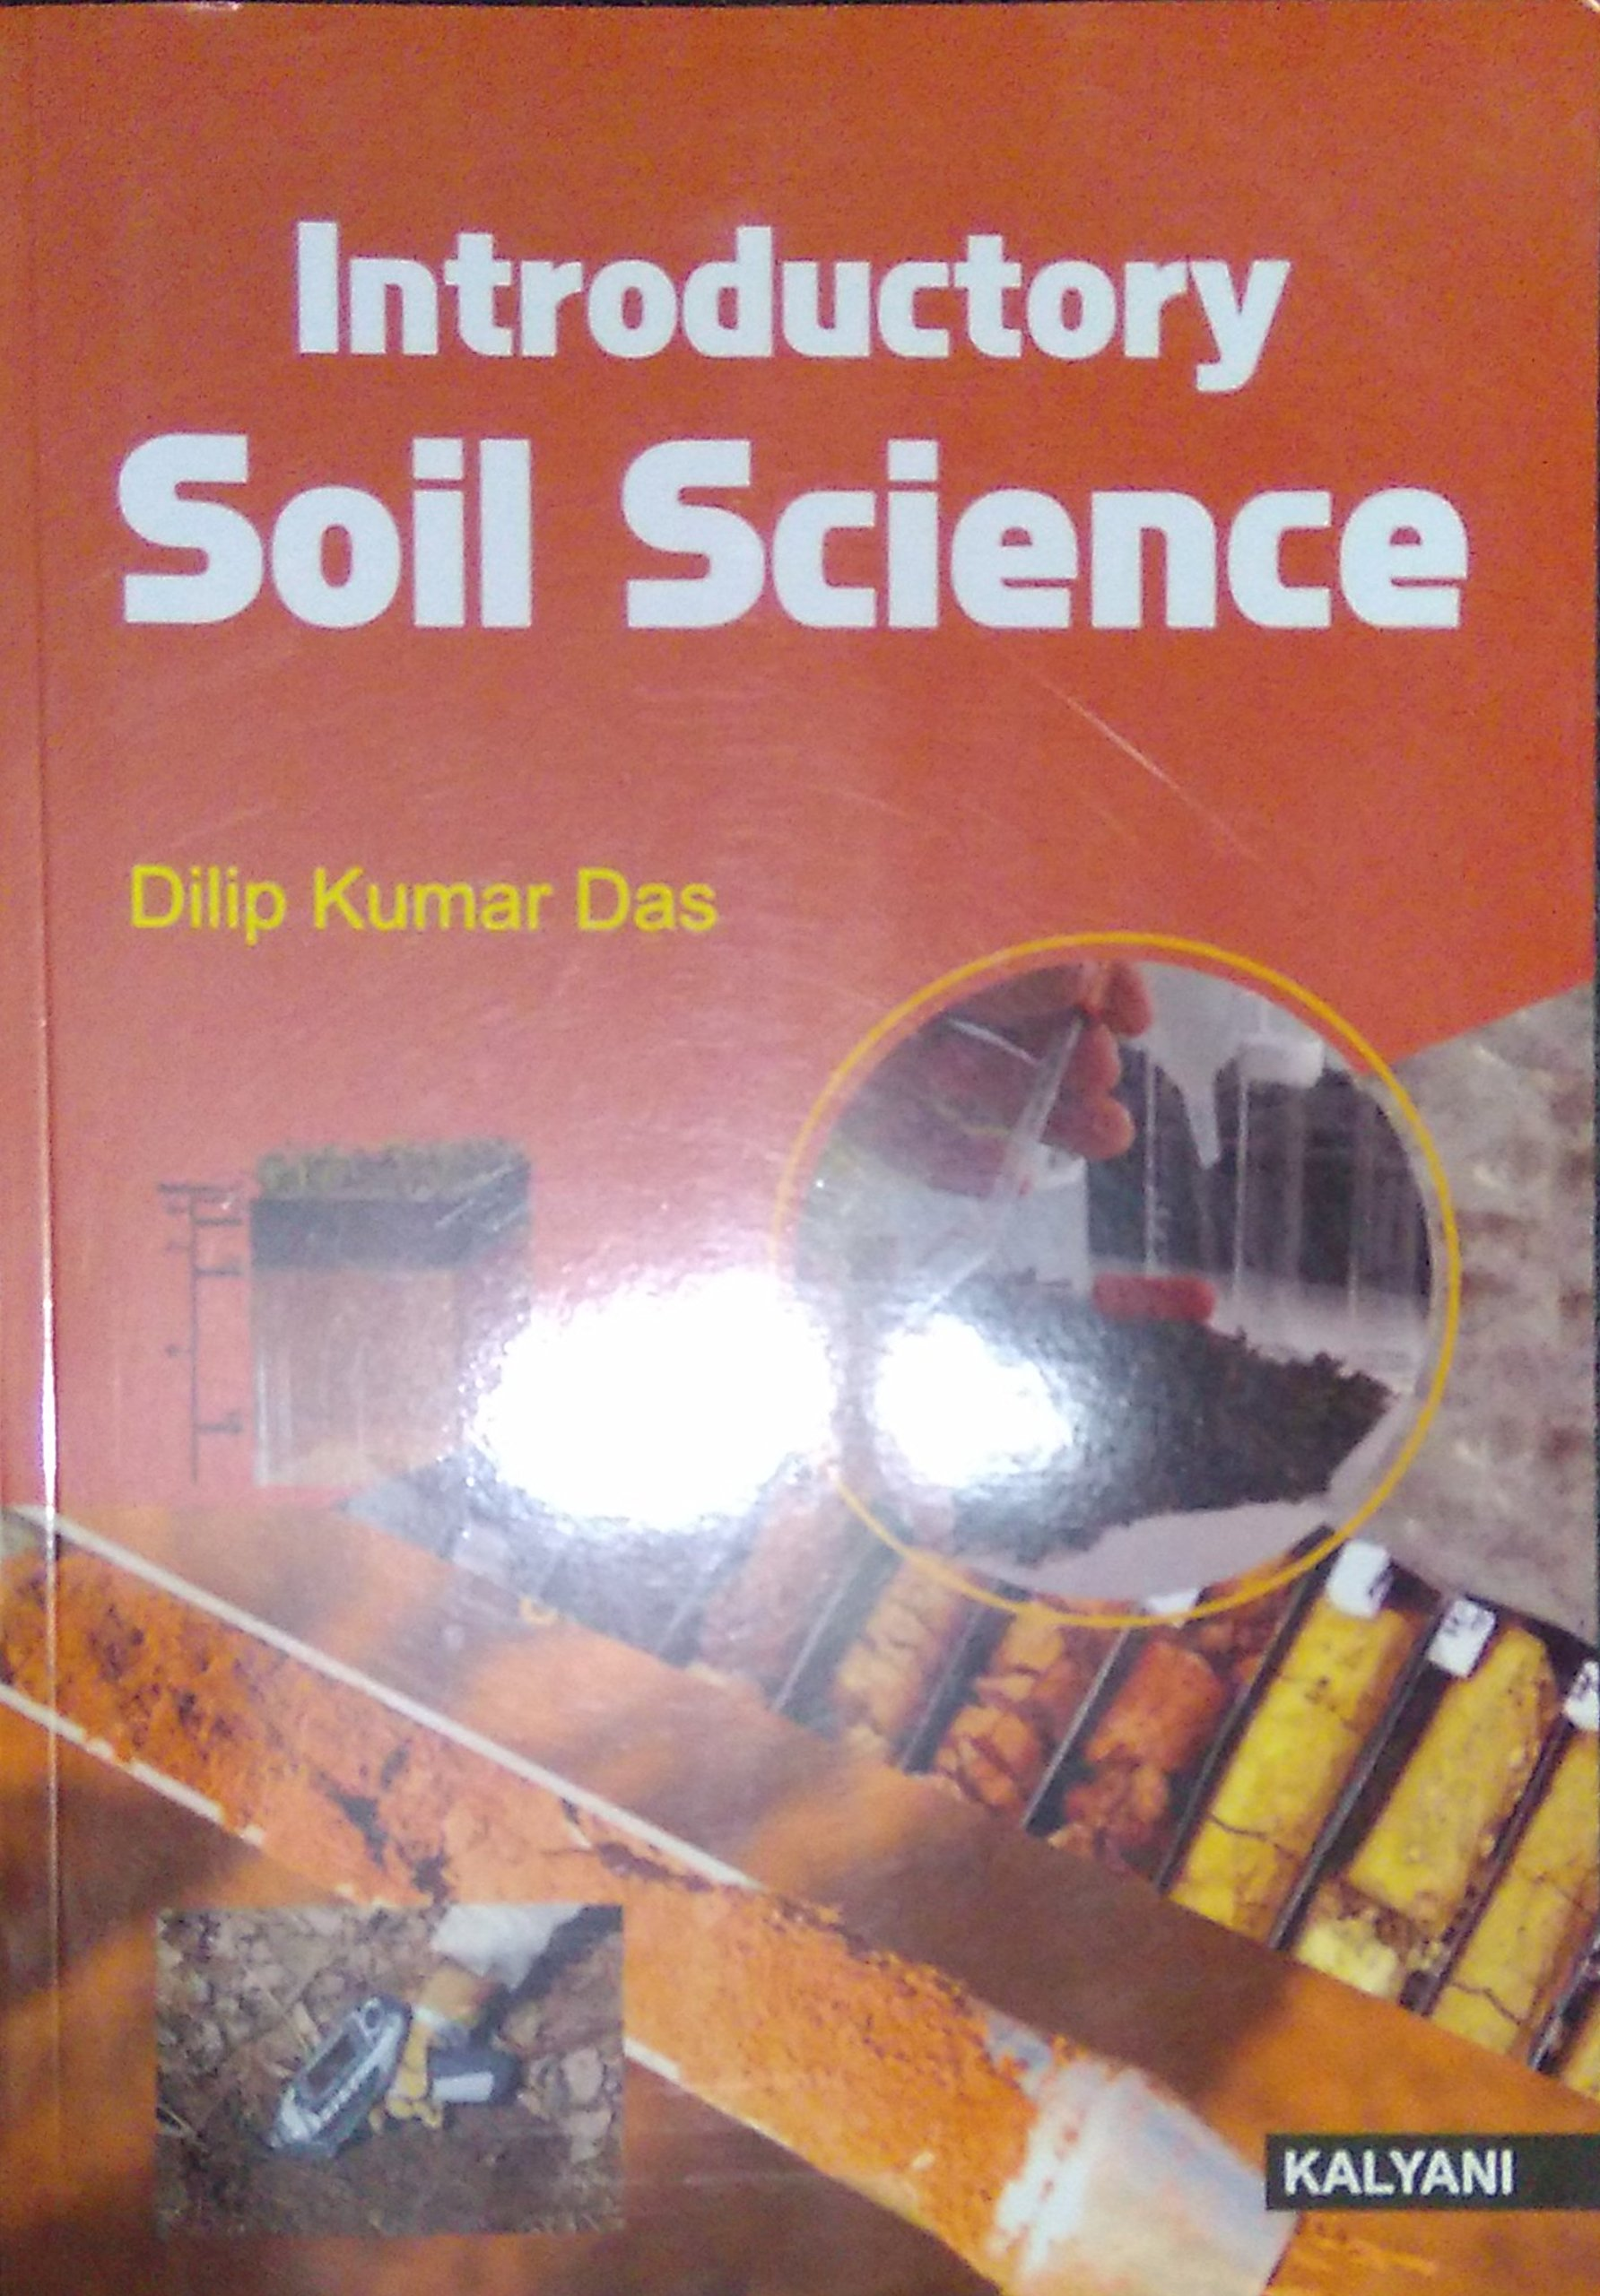 dk das itroduction to soil science by dk das 1